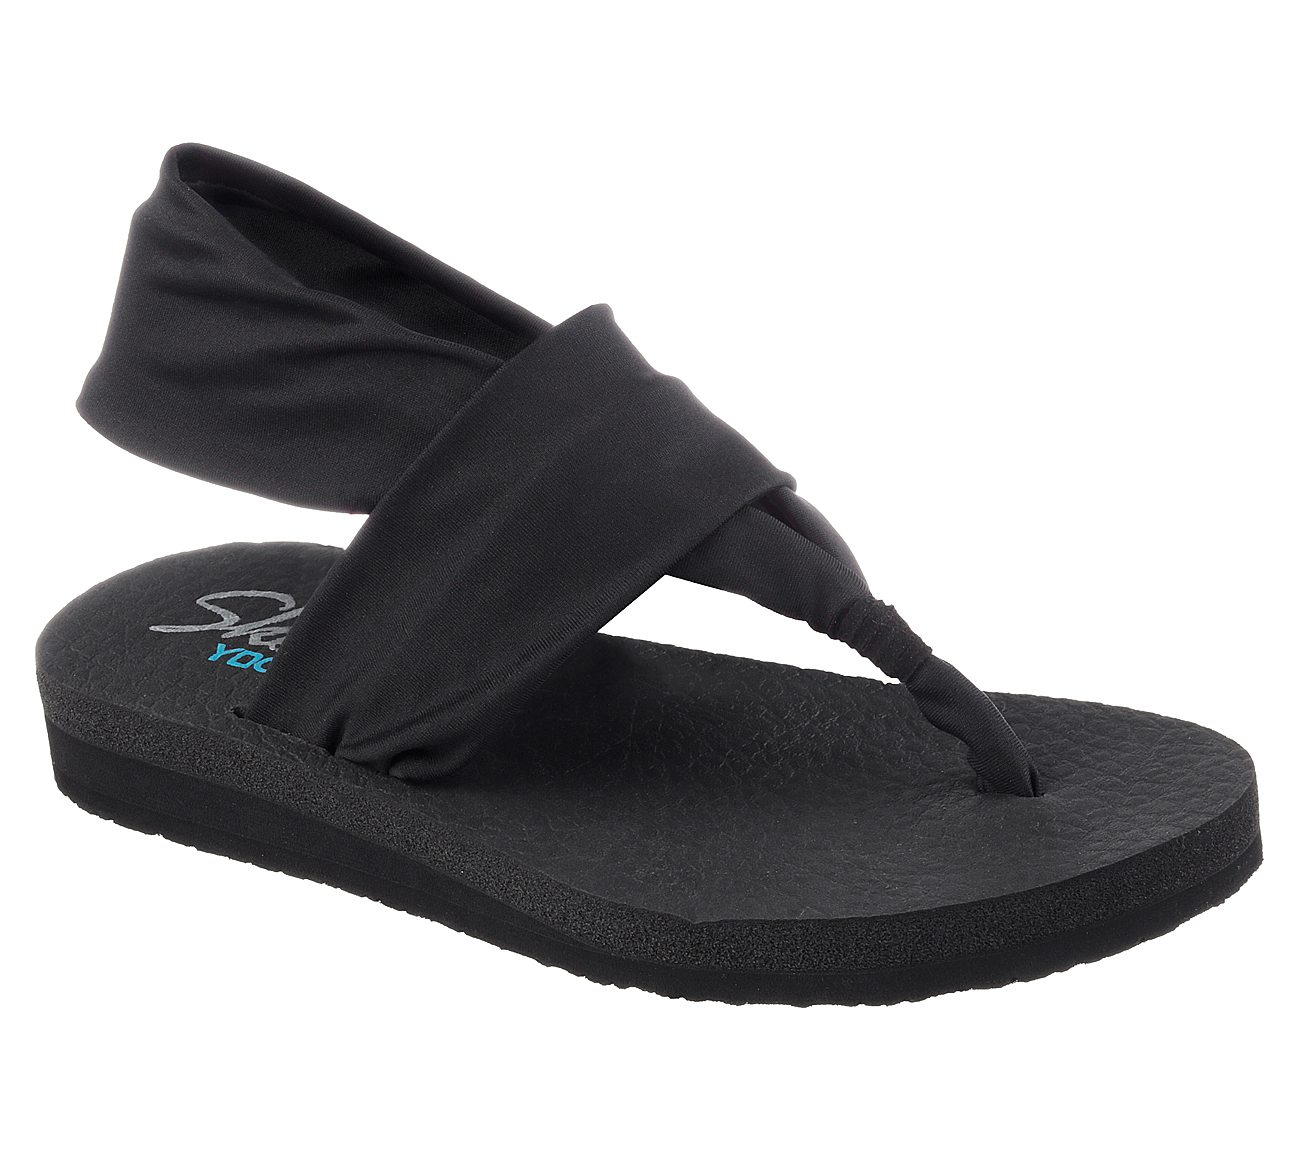 skechers black flip flops